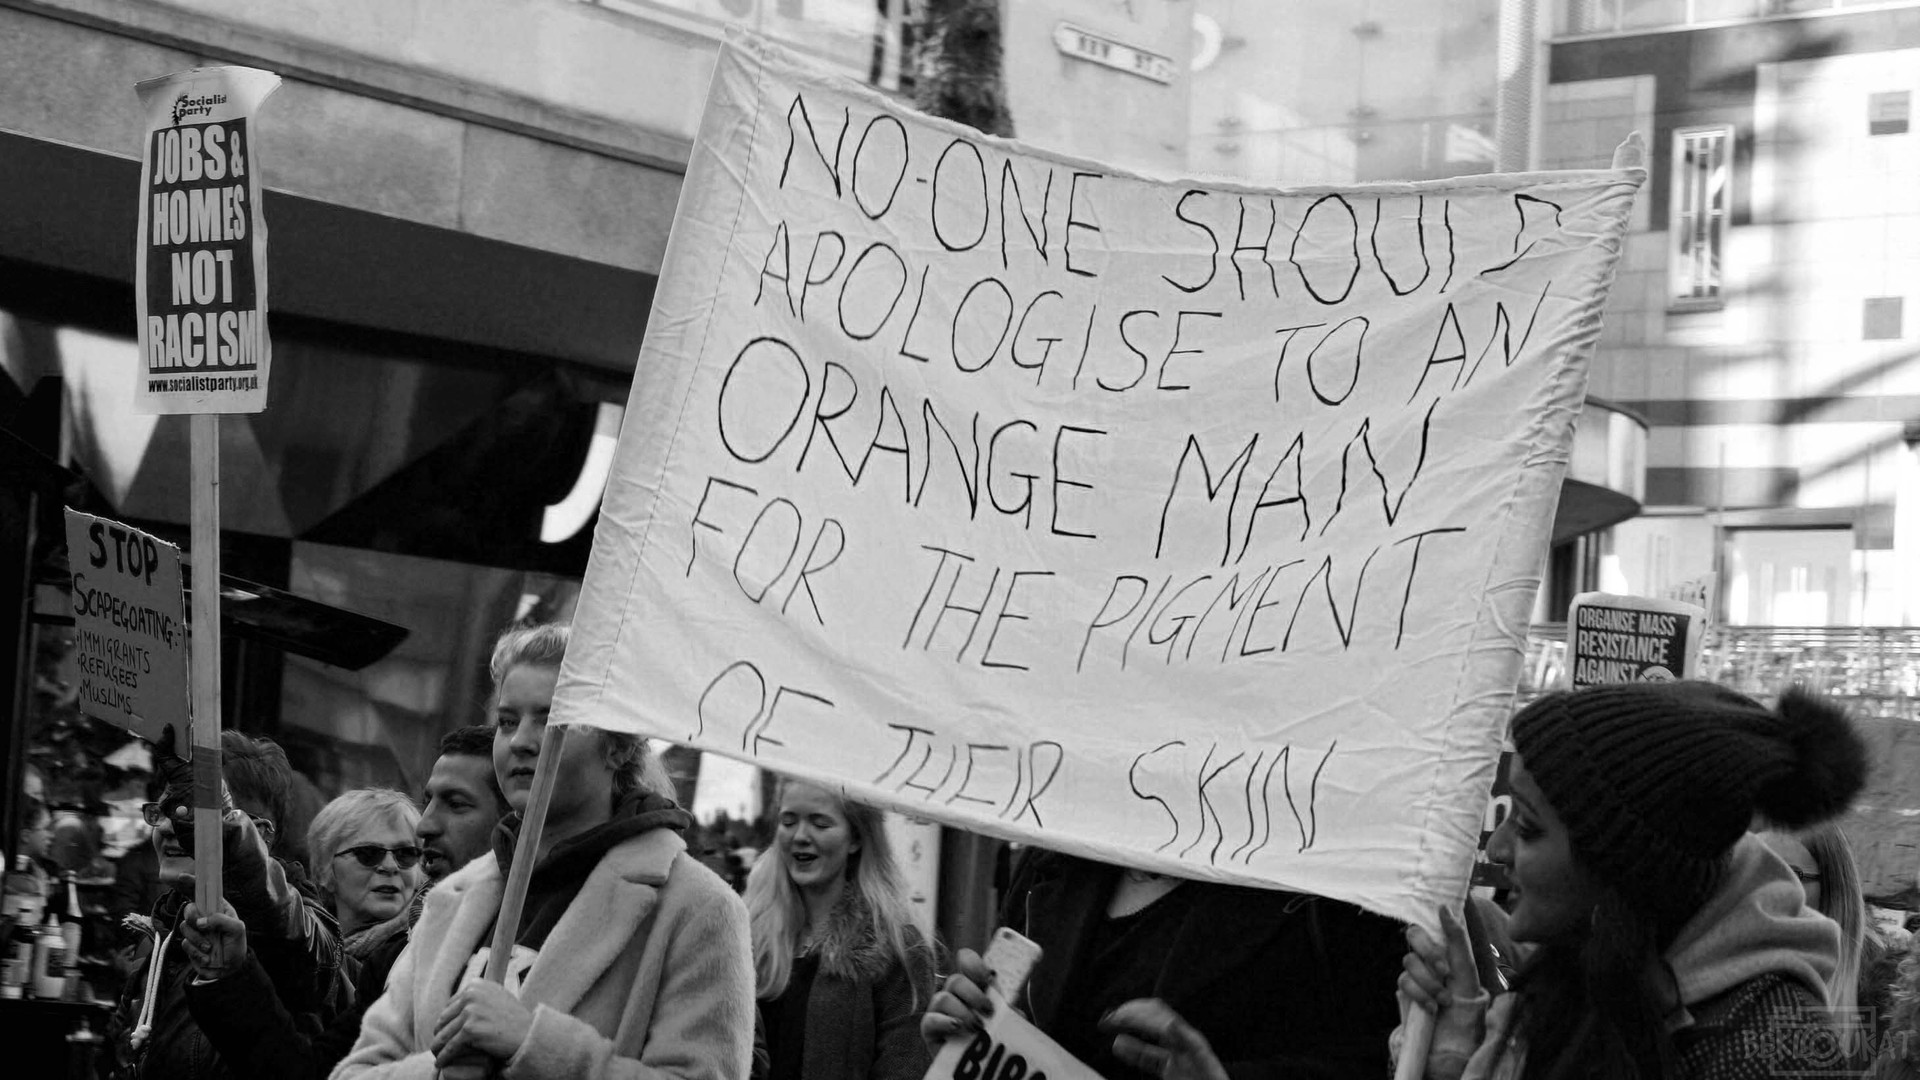 """""""No-one should apologise to an orange man for the pigment of their skin."""""""